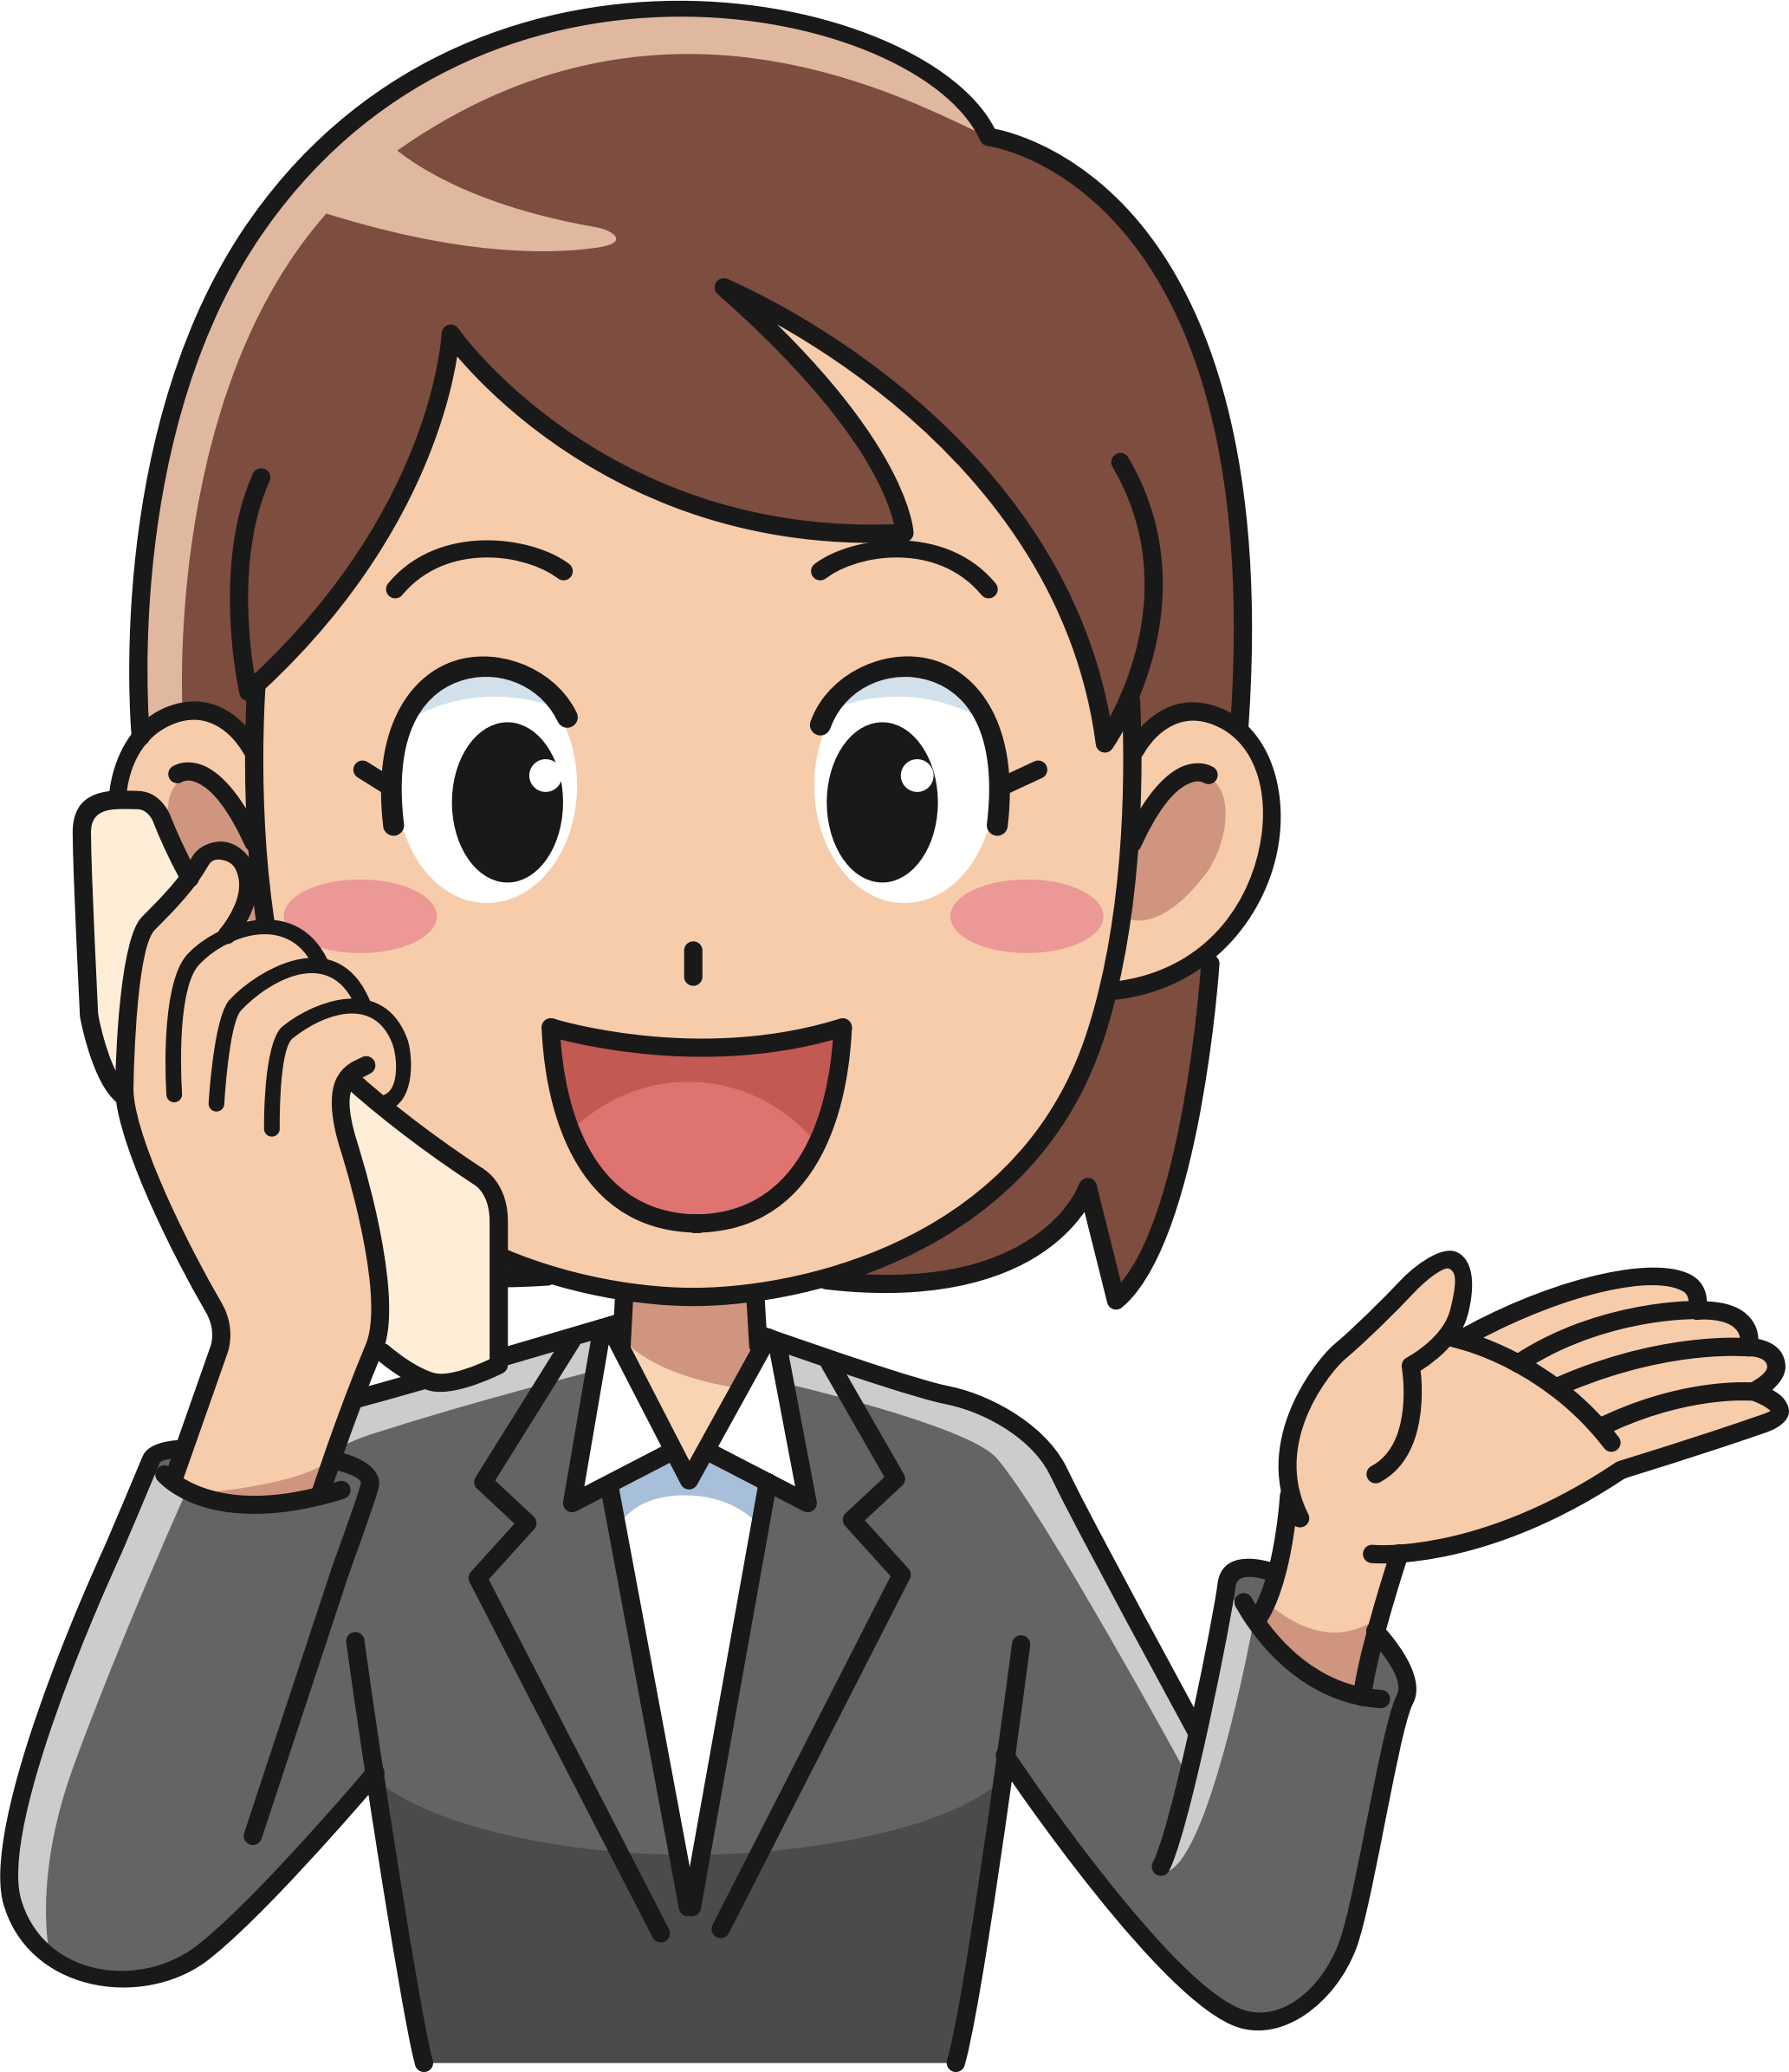 Female using telephone big. Phone clipart person